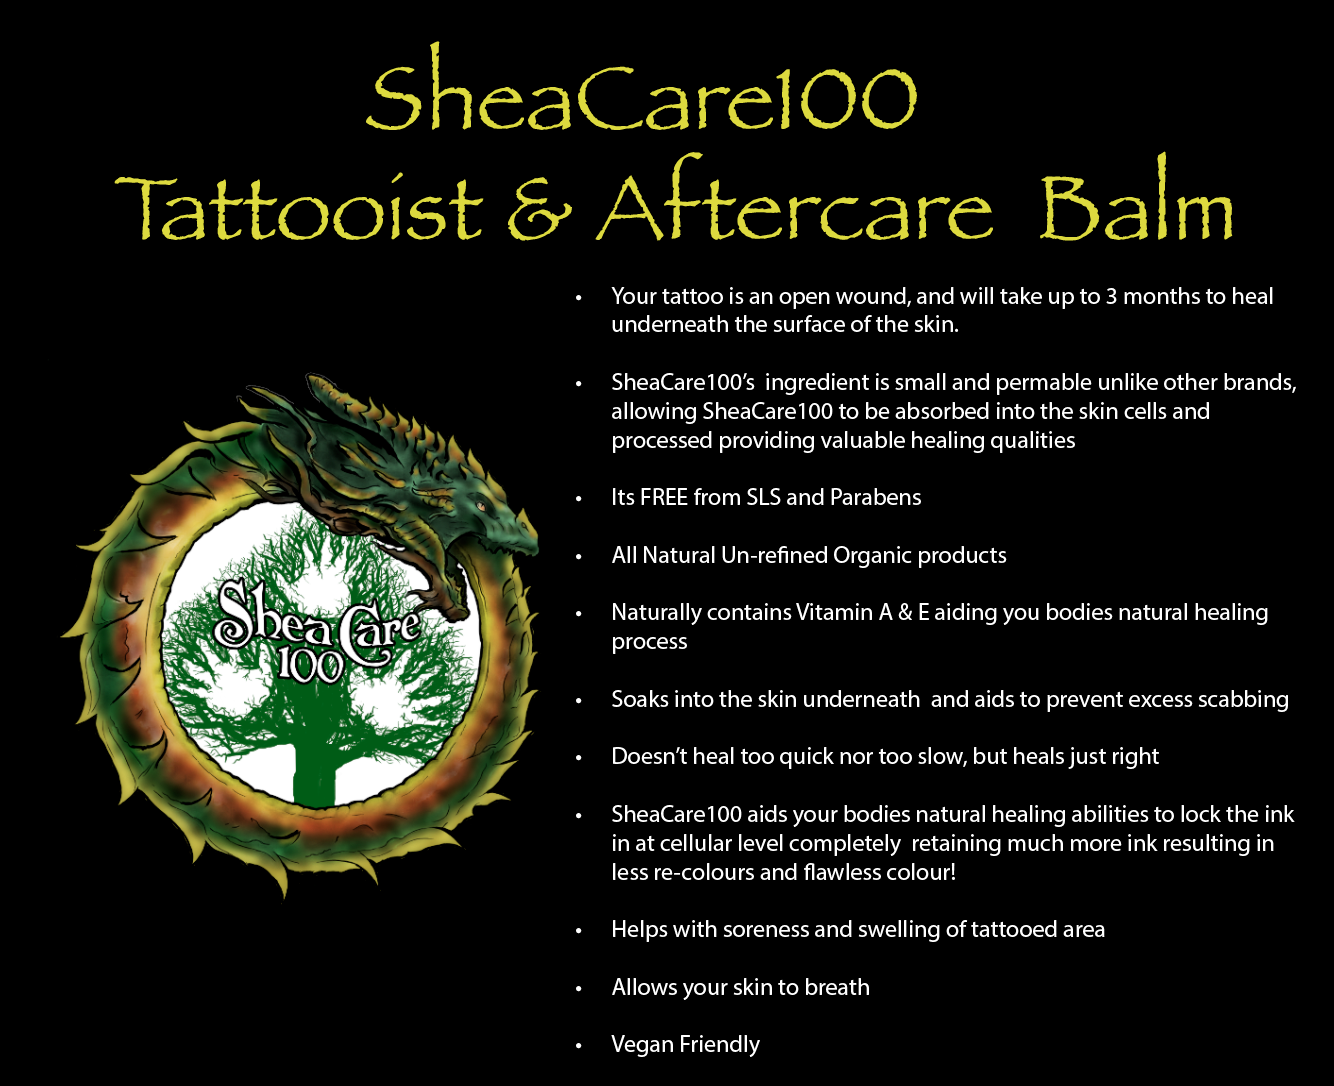 SheaCare100 Tattoo & Laser Aftercare